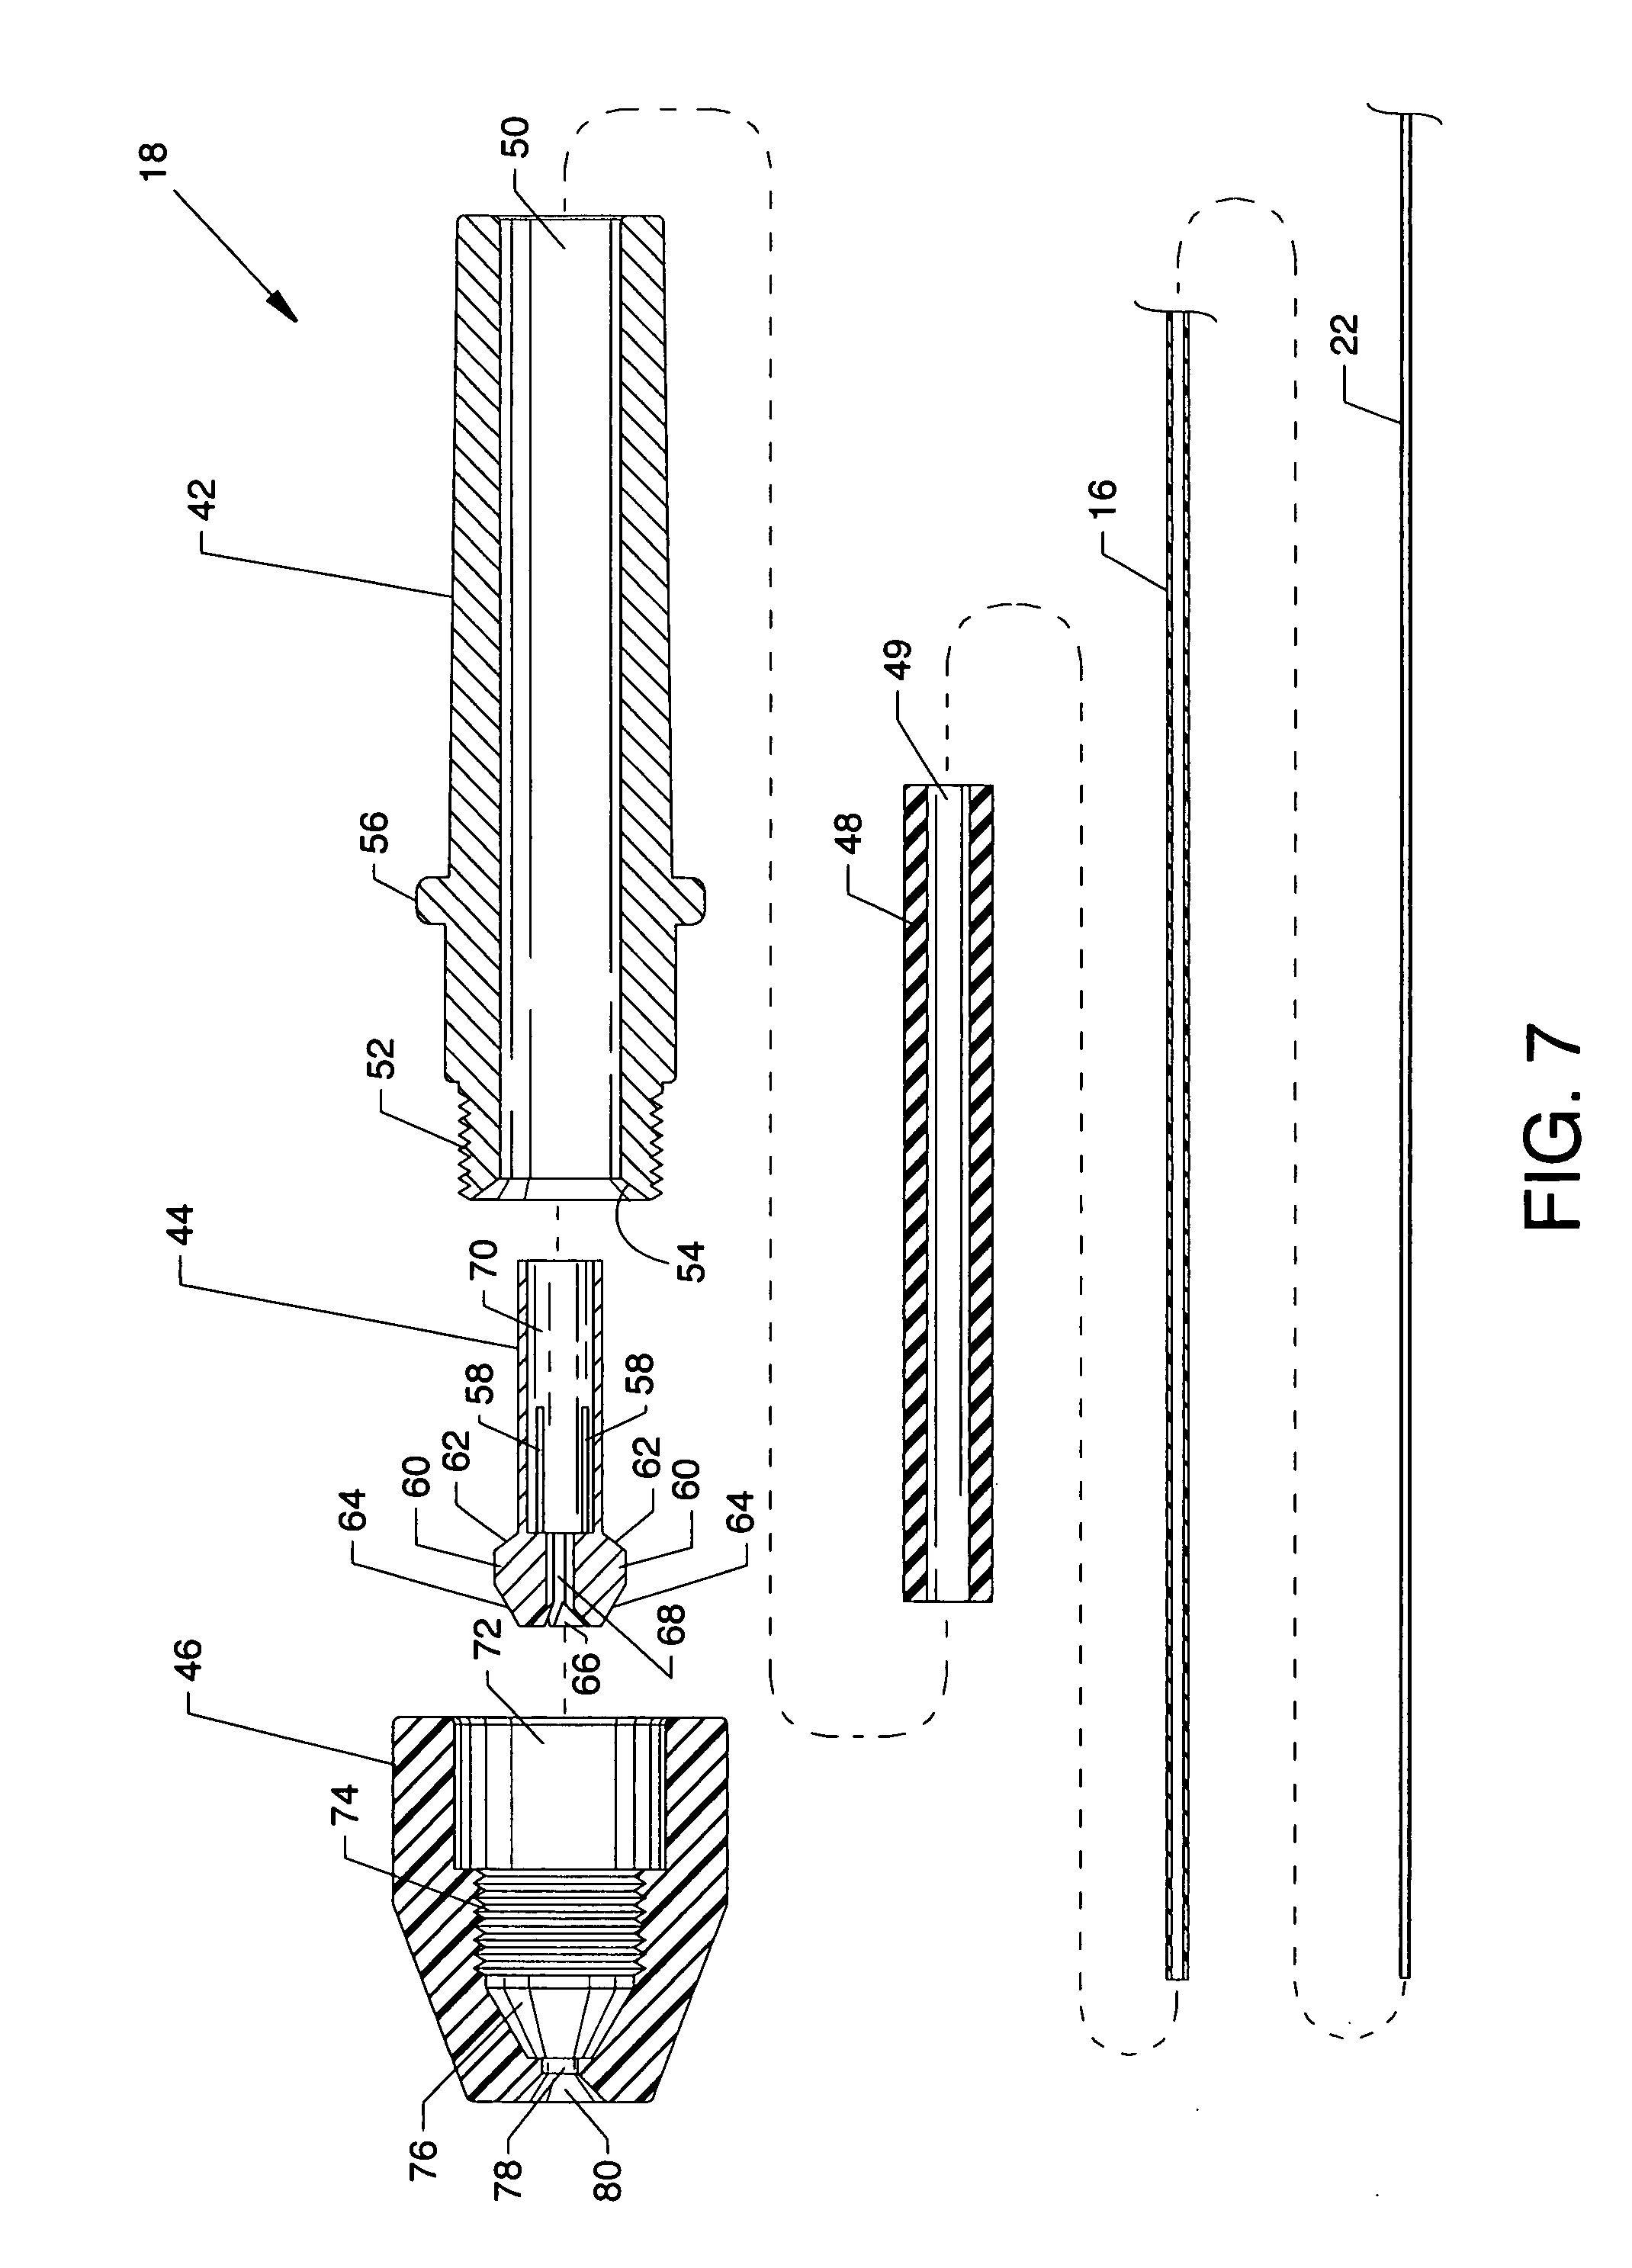 brevet us20080312671 infusion flow guidewire system